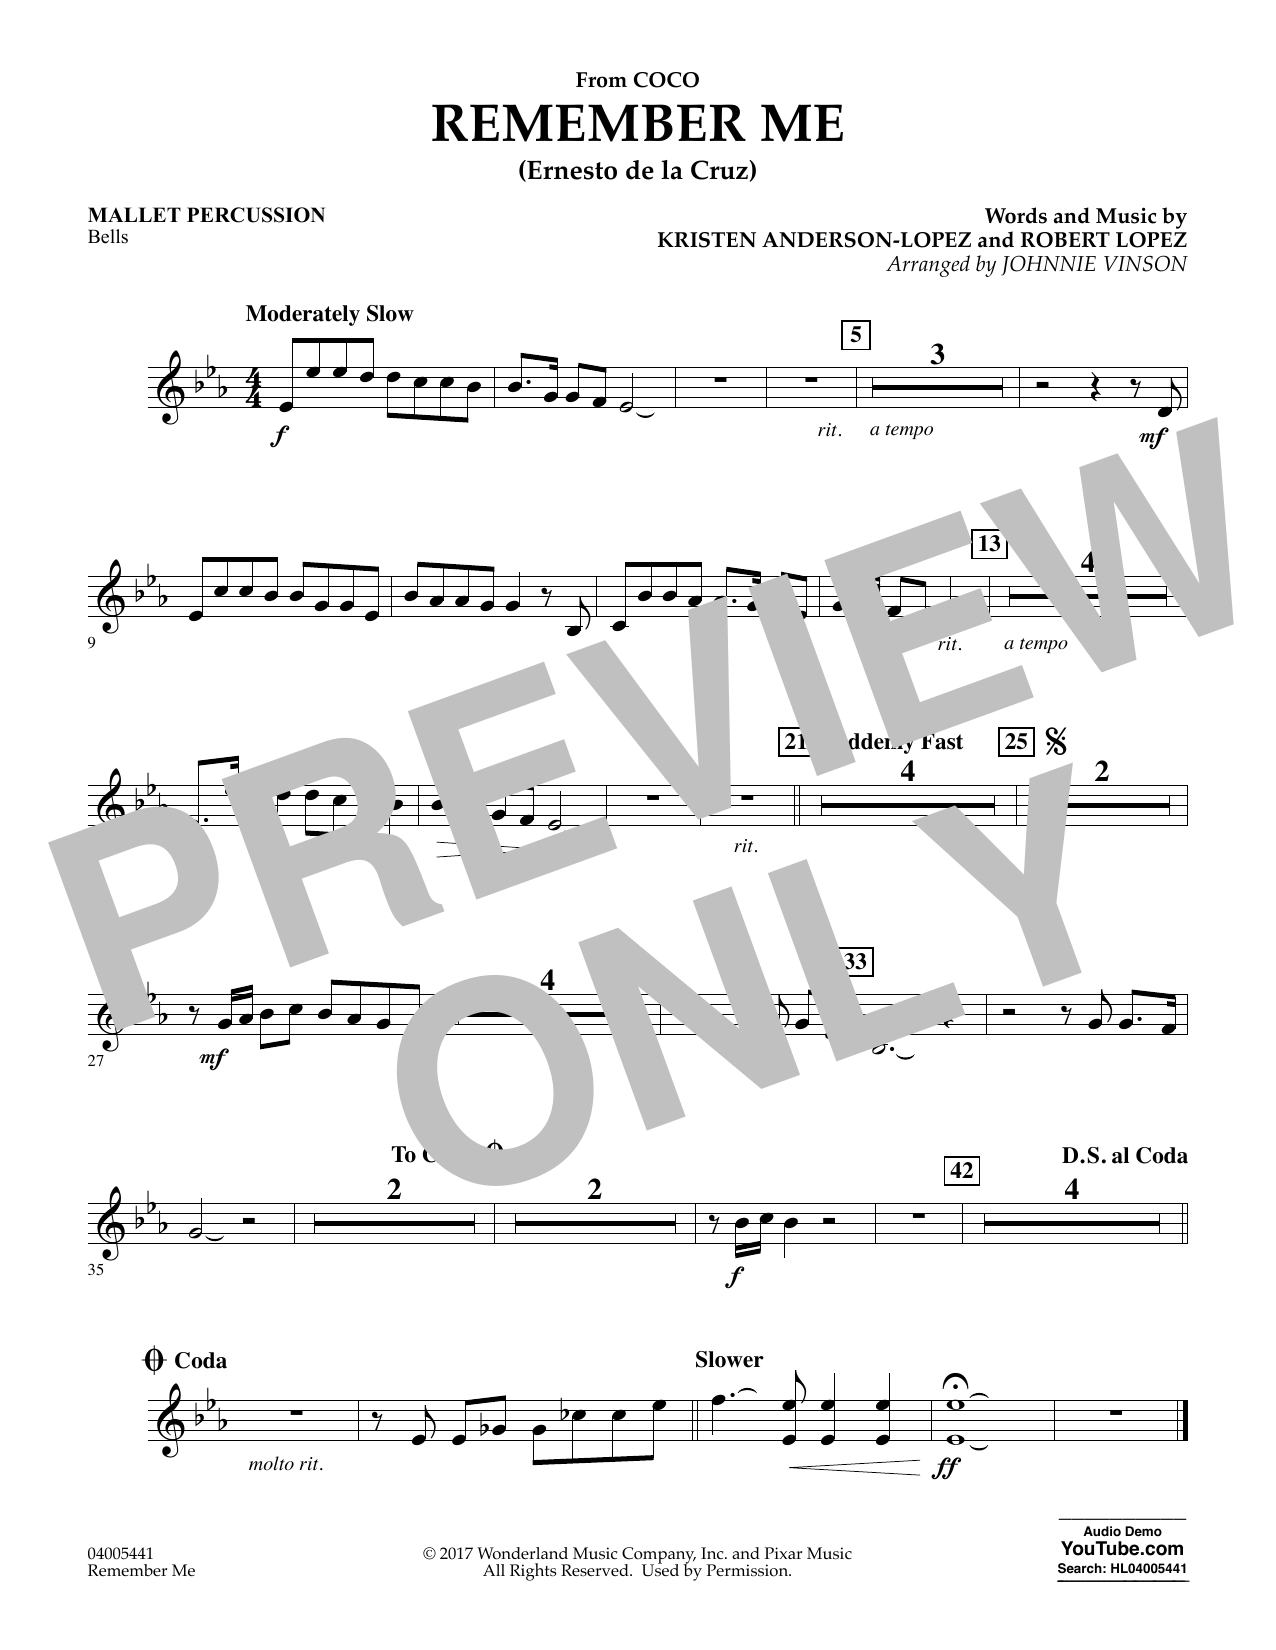 Kristen Anderson-Lopez & Robert Lopez Remember Me (from Coco) (arr. Johnnie Vinson) - Mallet Percussion sheet music notes and chords. Download Printable PDF.